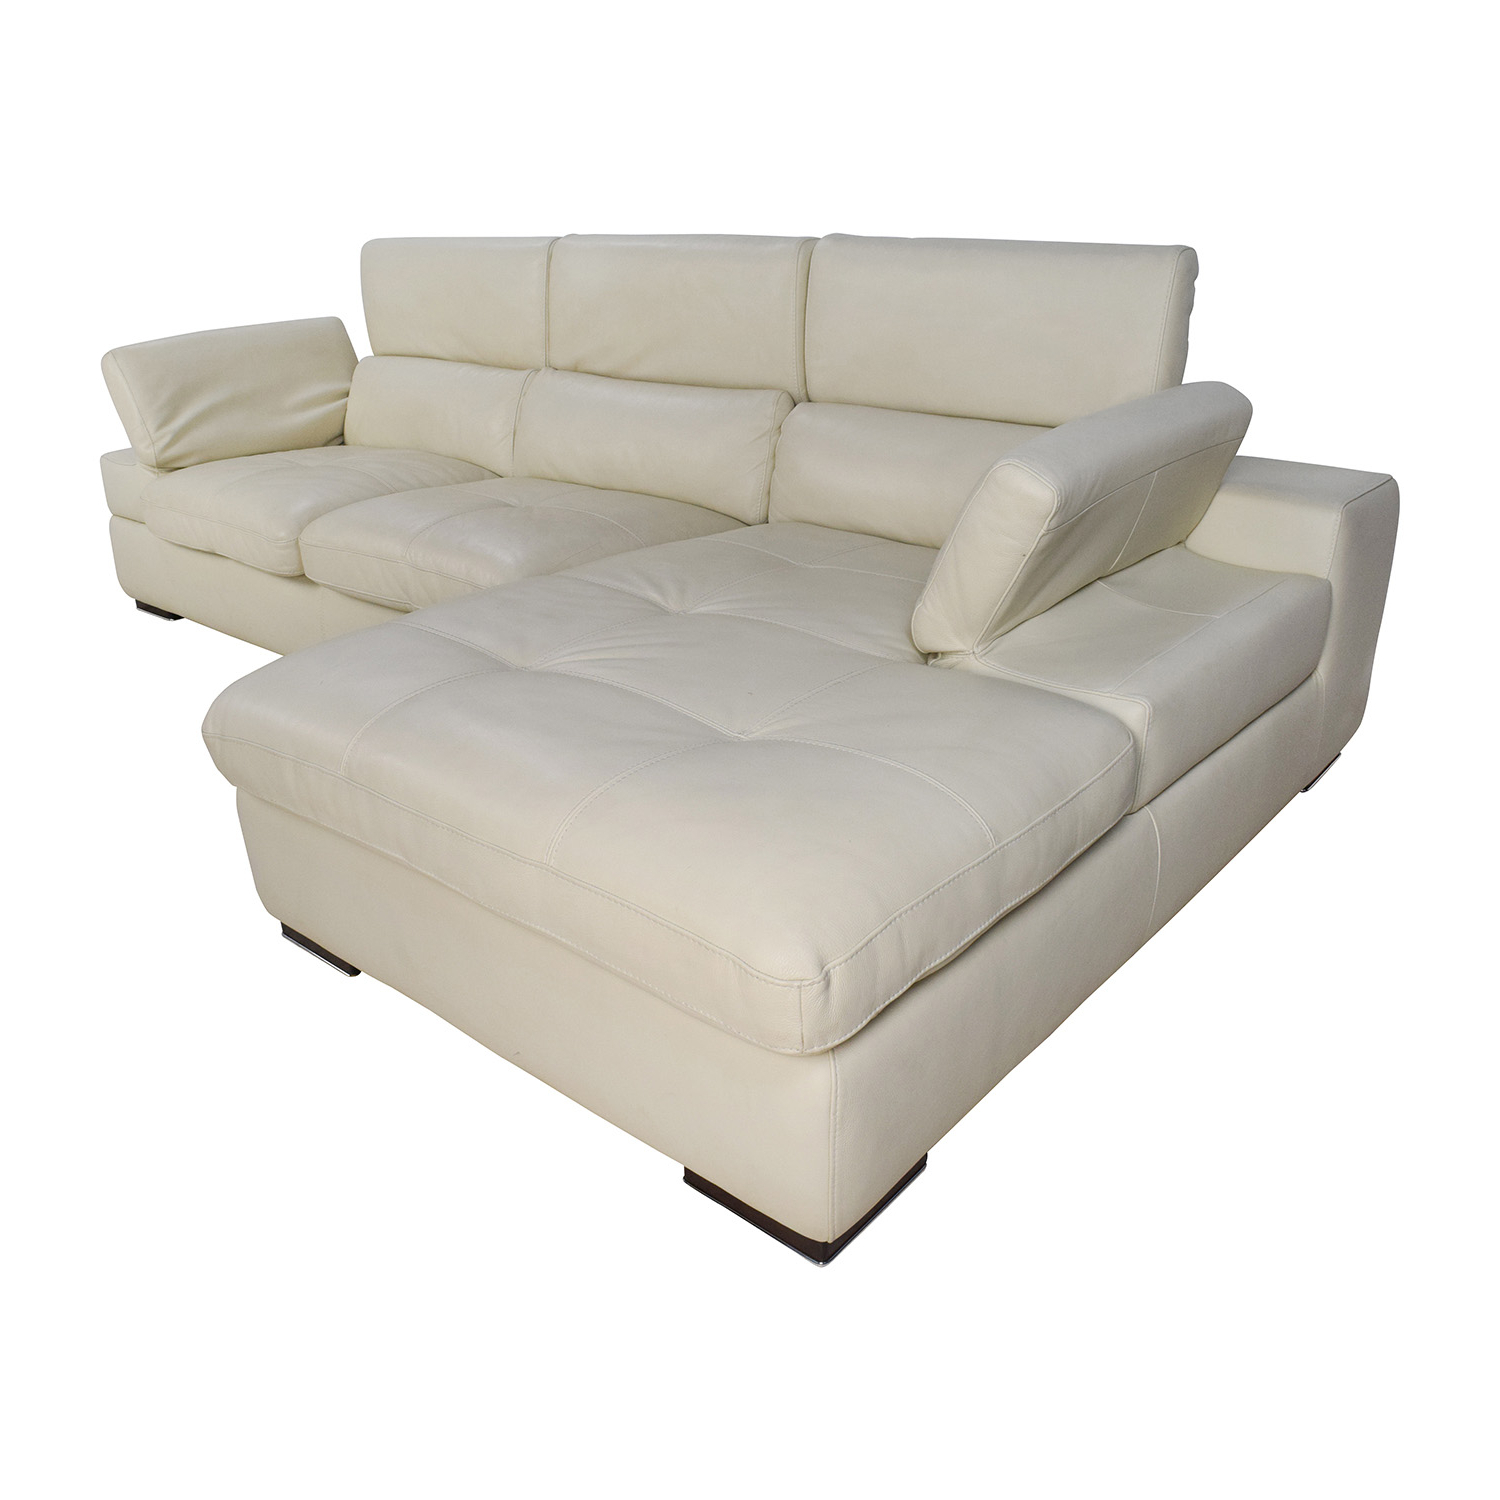 [%69% Off – L Shaped Cream Leather Sectional Sofa / Sofas Within Most Up To Date Owego L Shaped Sectional Sofas|owego L Shaped Sectional Sofas In Newest 69% Off – L Shaped Cream Leather Sectional Sofa / Sofas|most Recently Released Owego L Shaped Sectional Sofas Inside 69% Off – L Shaped Cream Leather Sectional Sofa / Sofas|newest 69% Off – L Shaped Cream Leather Sectional Sofa / Sofas Pertaining To Owego L Shaped Sectional Sofas%] (View 11 of 20)